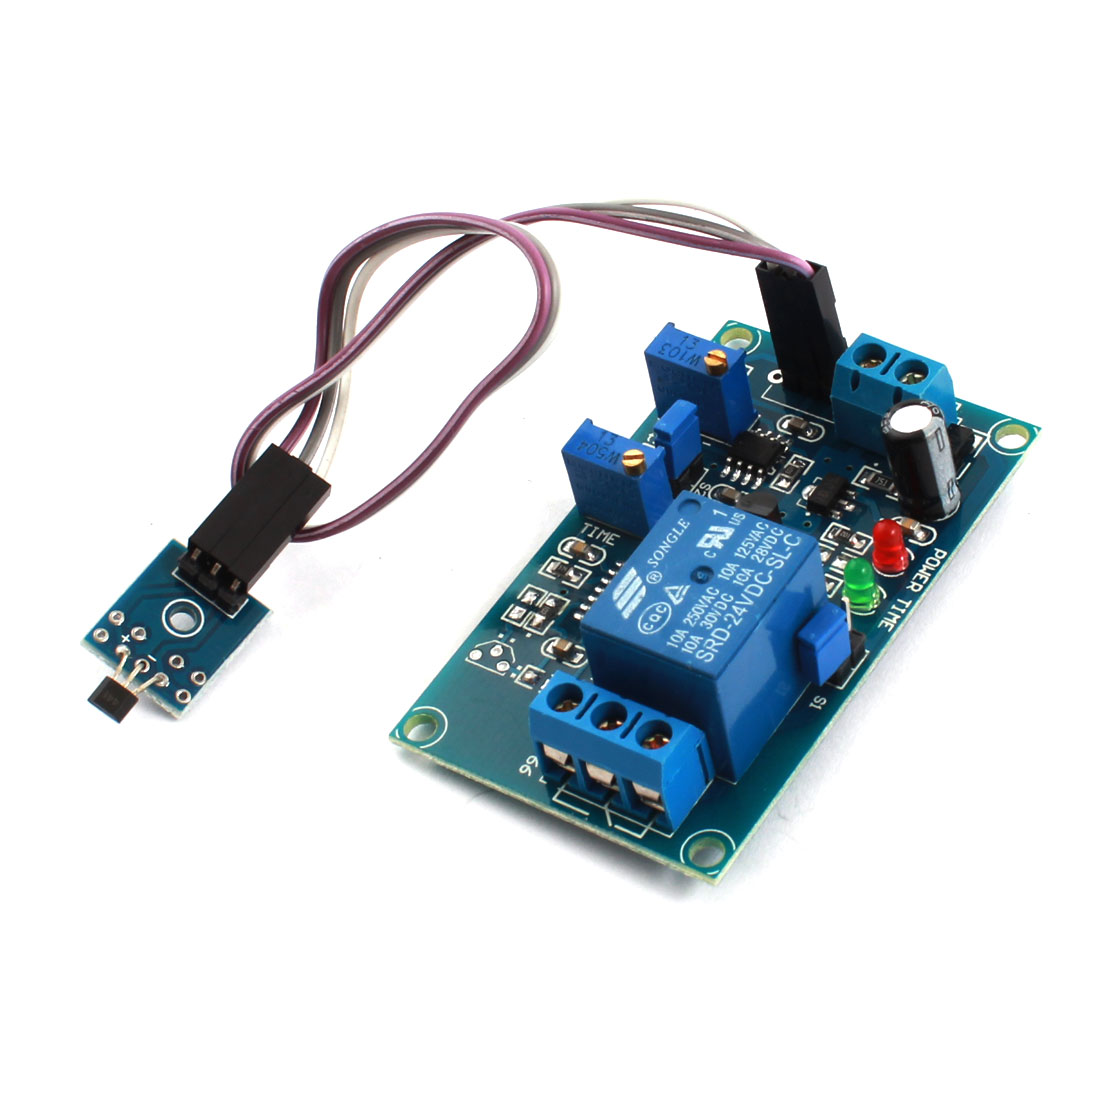 DC24V 1 Channel Hall Effect Sensor Switch Megnetic Inducting Trigger Time Delay Relay Module